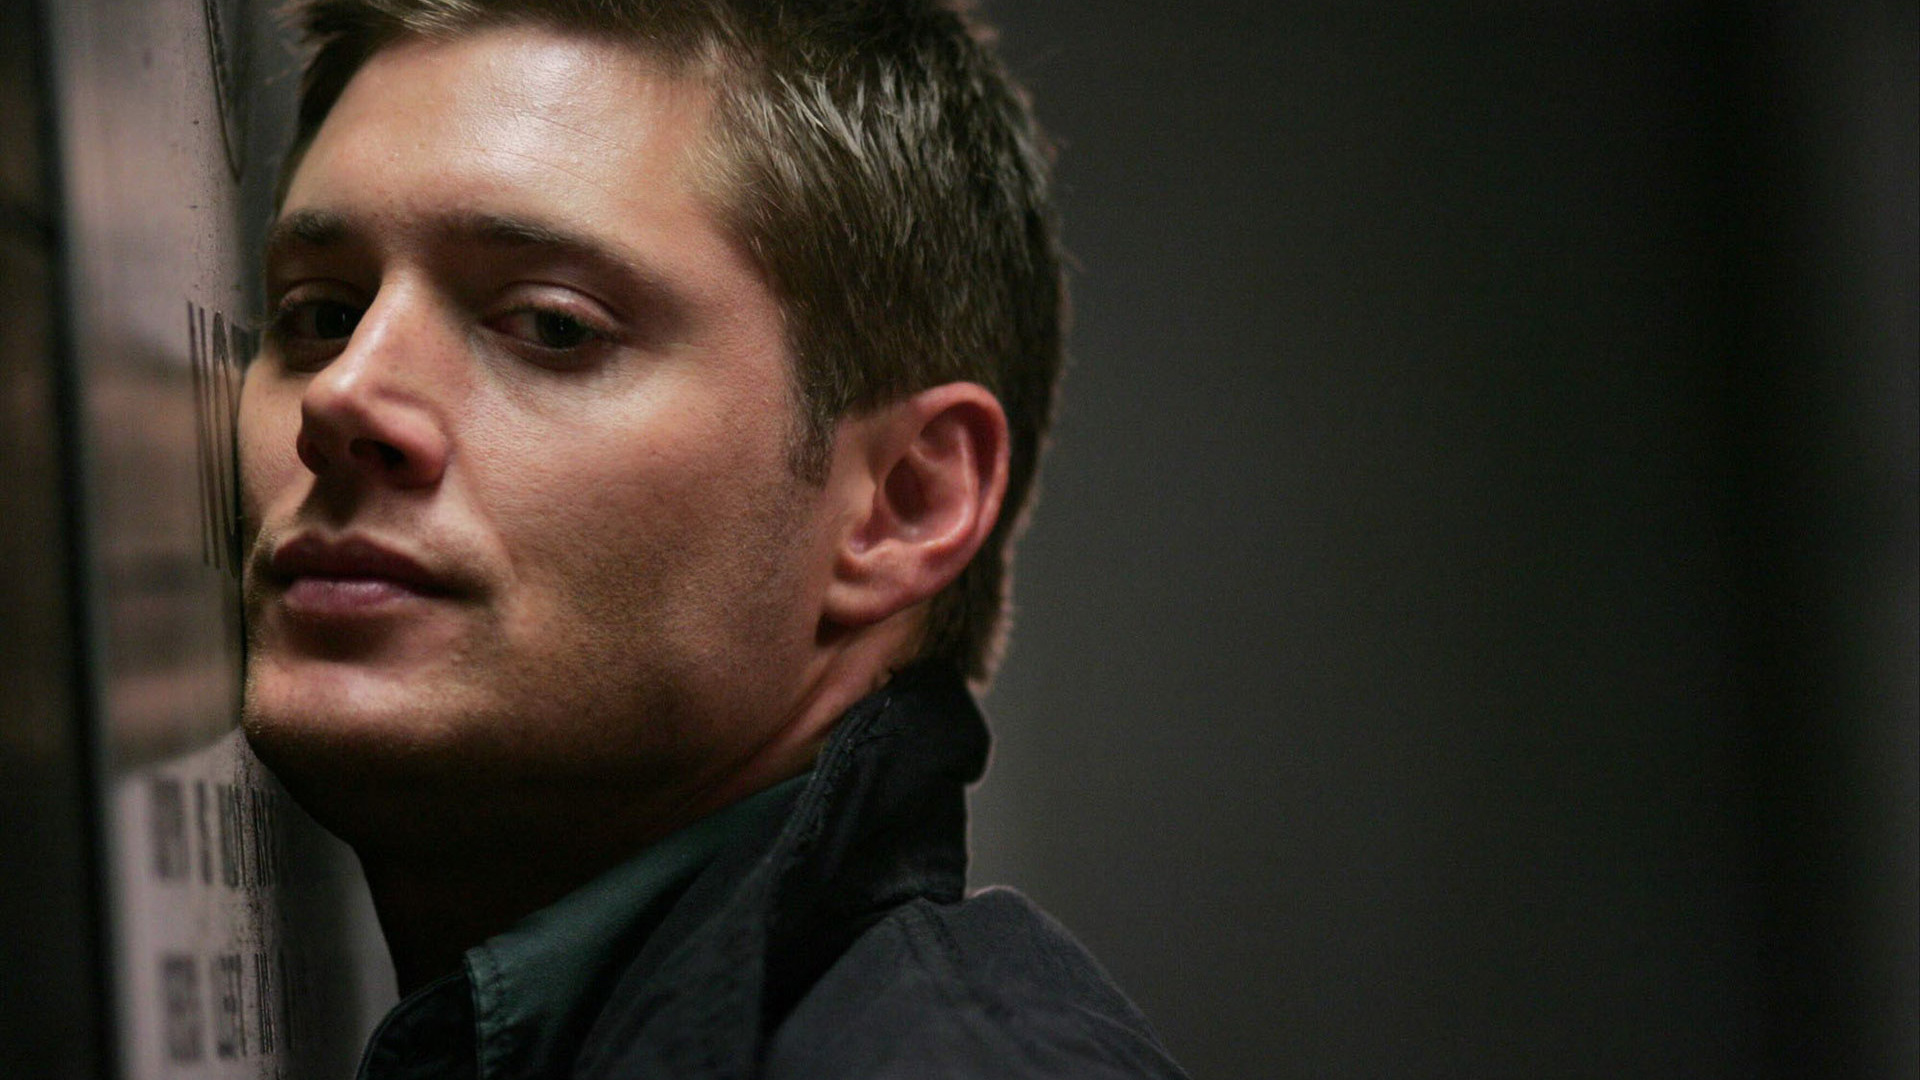 Good Quality Jensen Ackles  HD Wallpaper Wallpaper